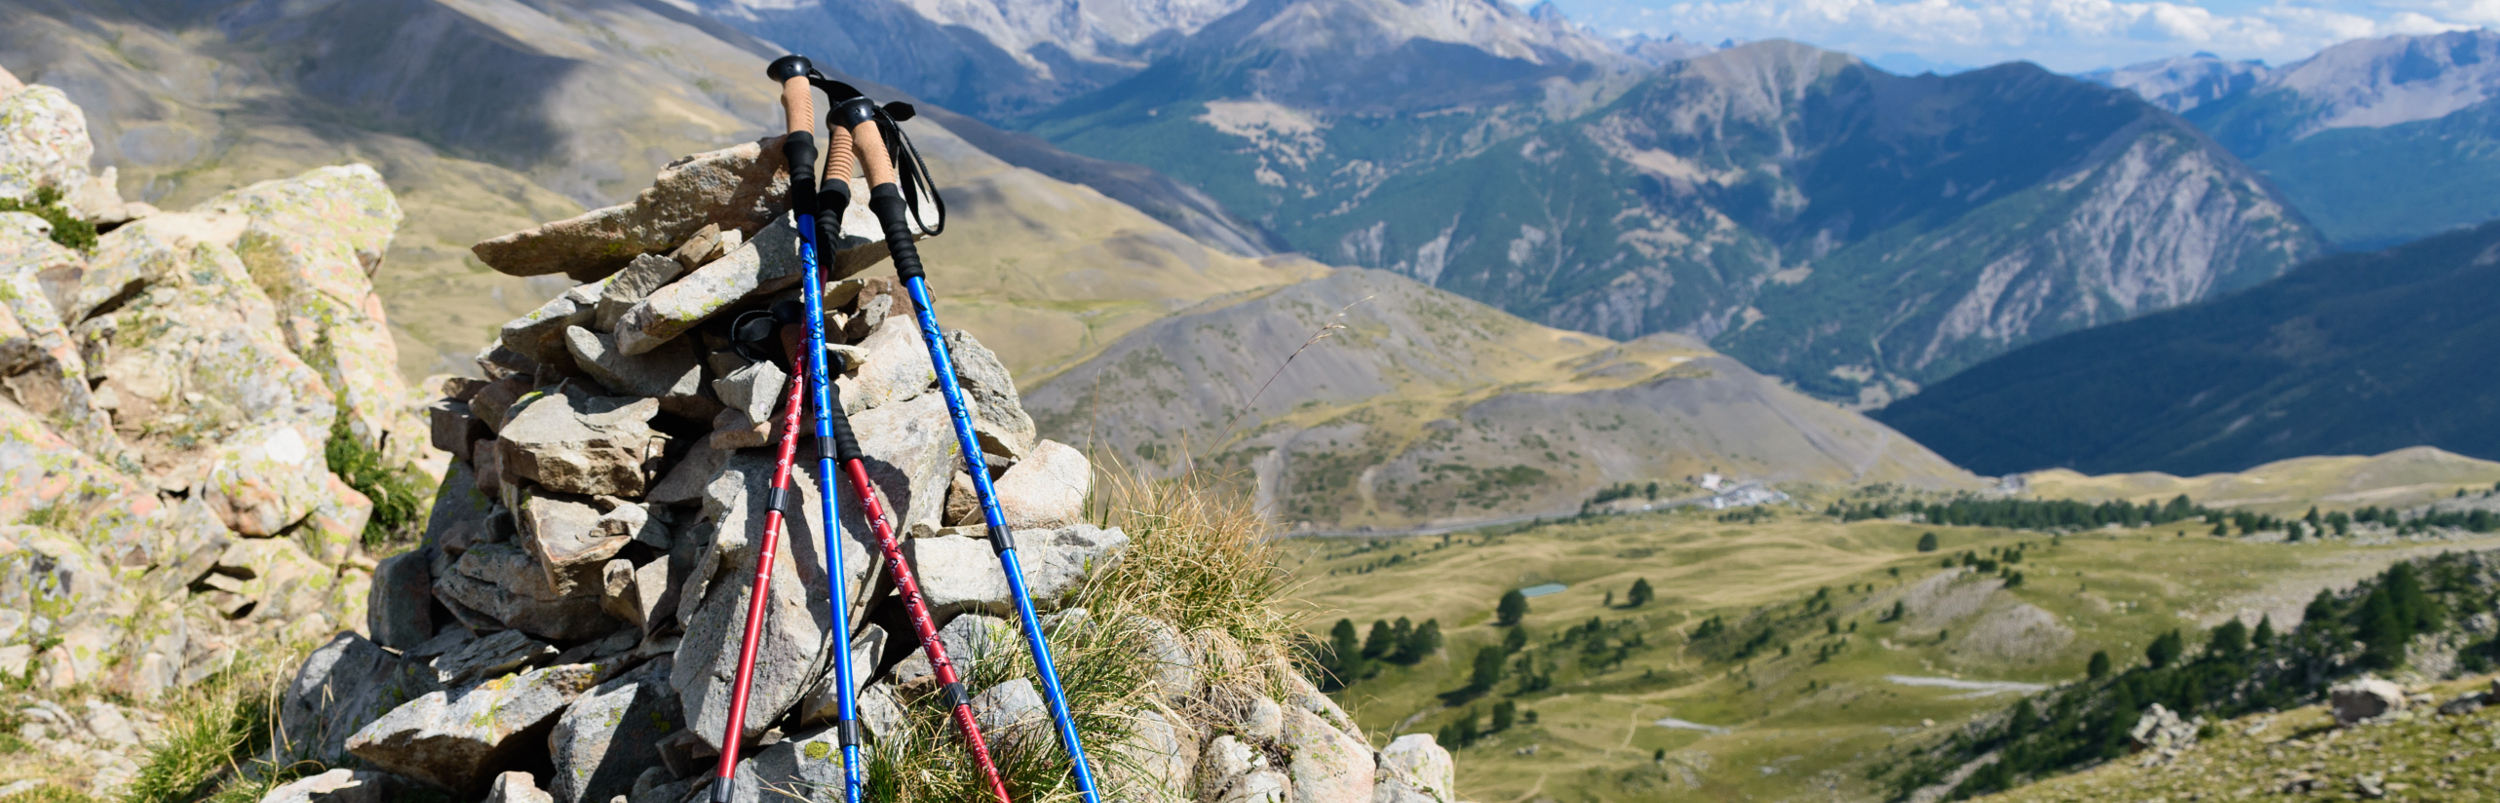 Hiking sticks and trekking poles